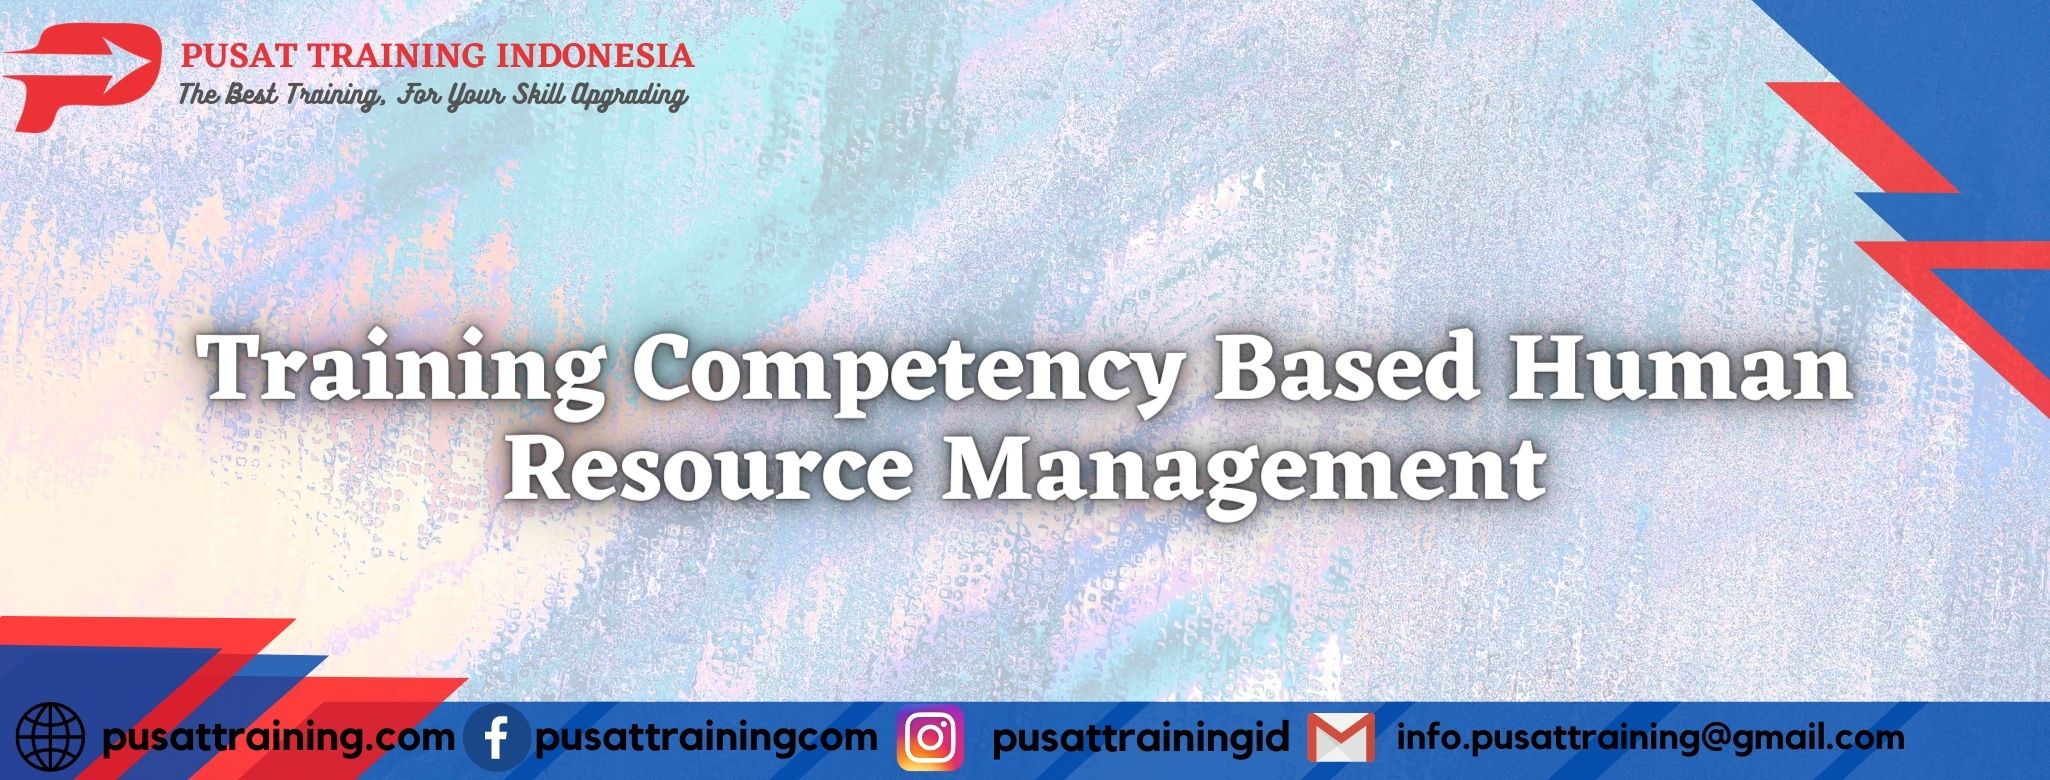 Training Competency Based Human Resource Management